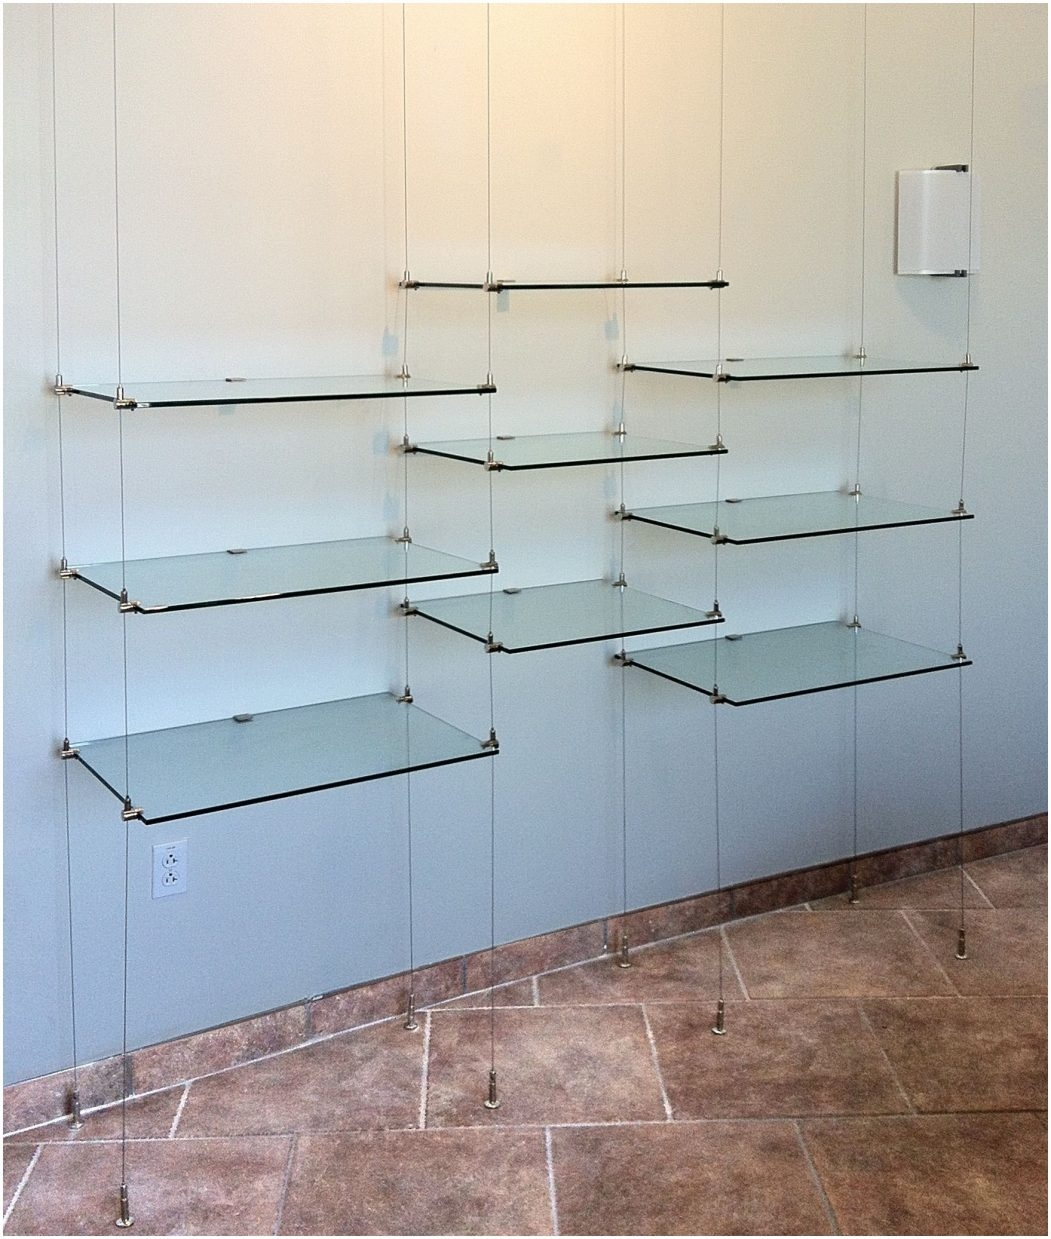 Suspended Glass Shelf Hardware Suspended Cable Shelves For Ventana Within Cable Suspended Glass Shelves (Image 15 of 15)